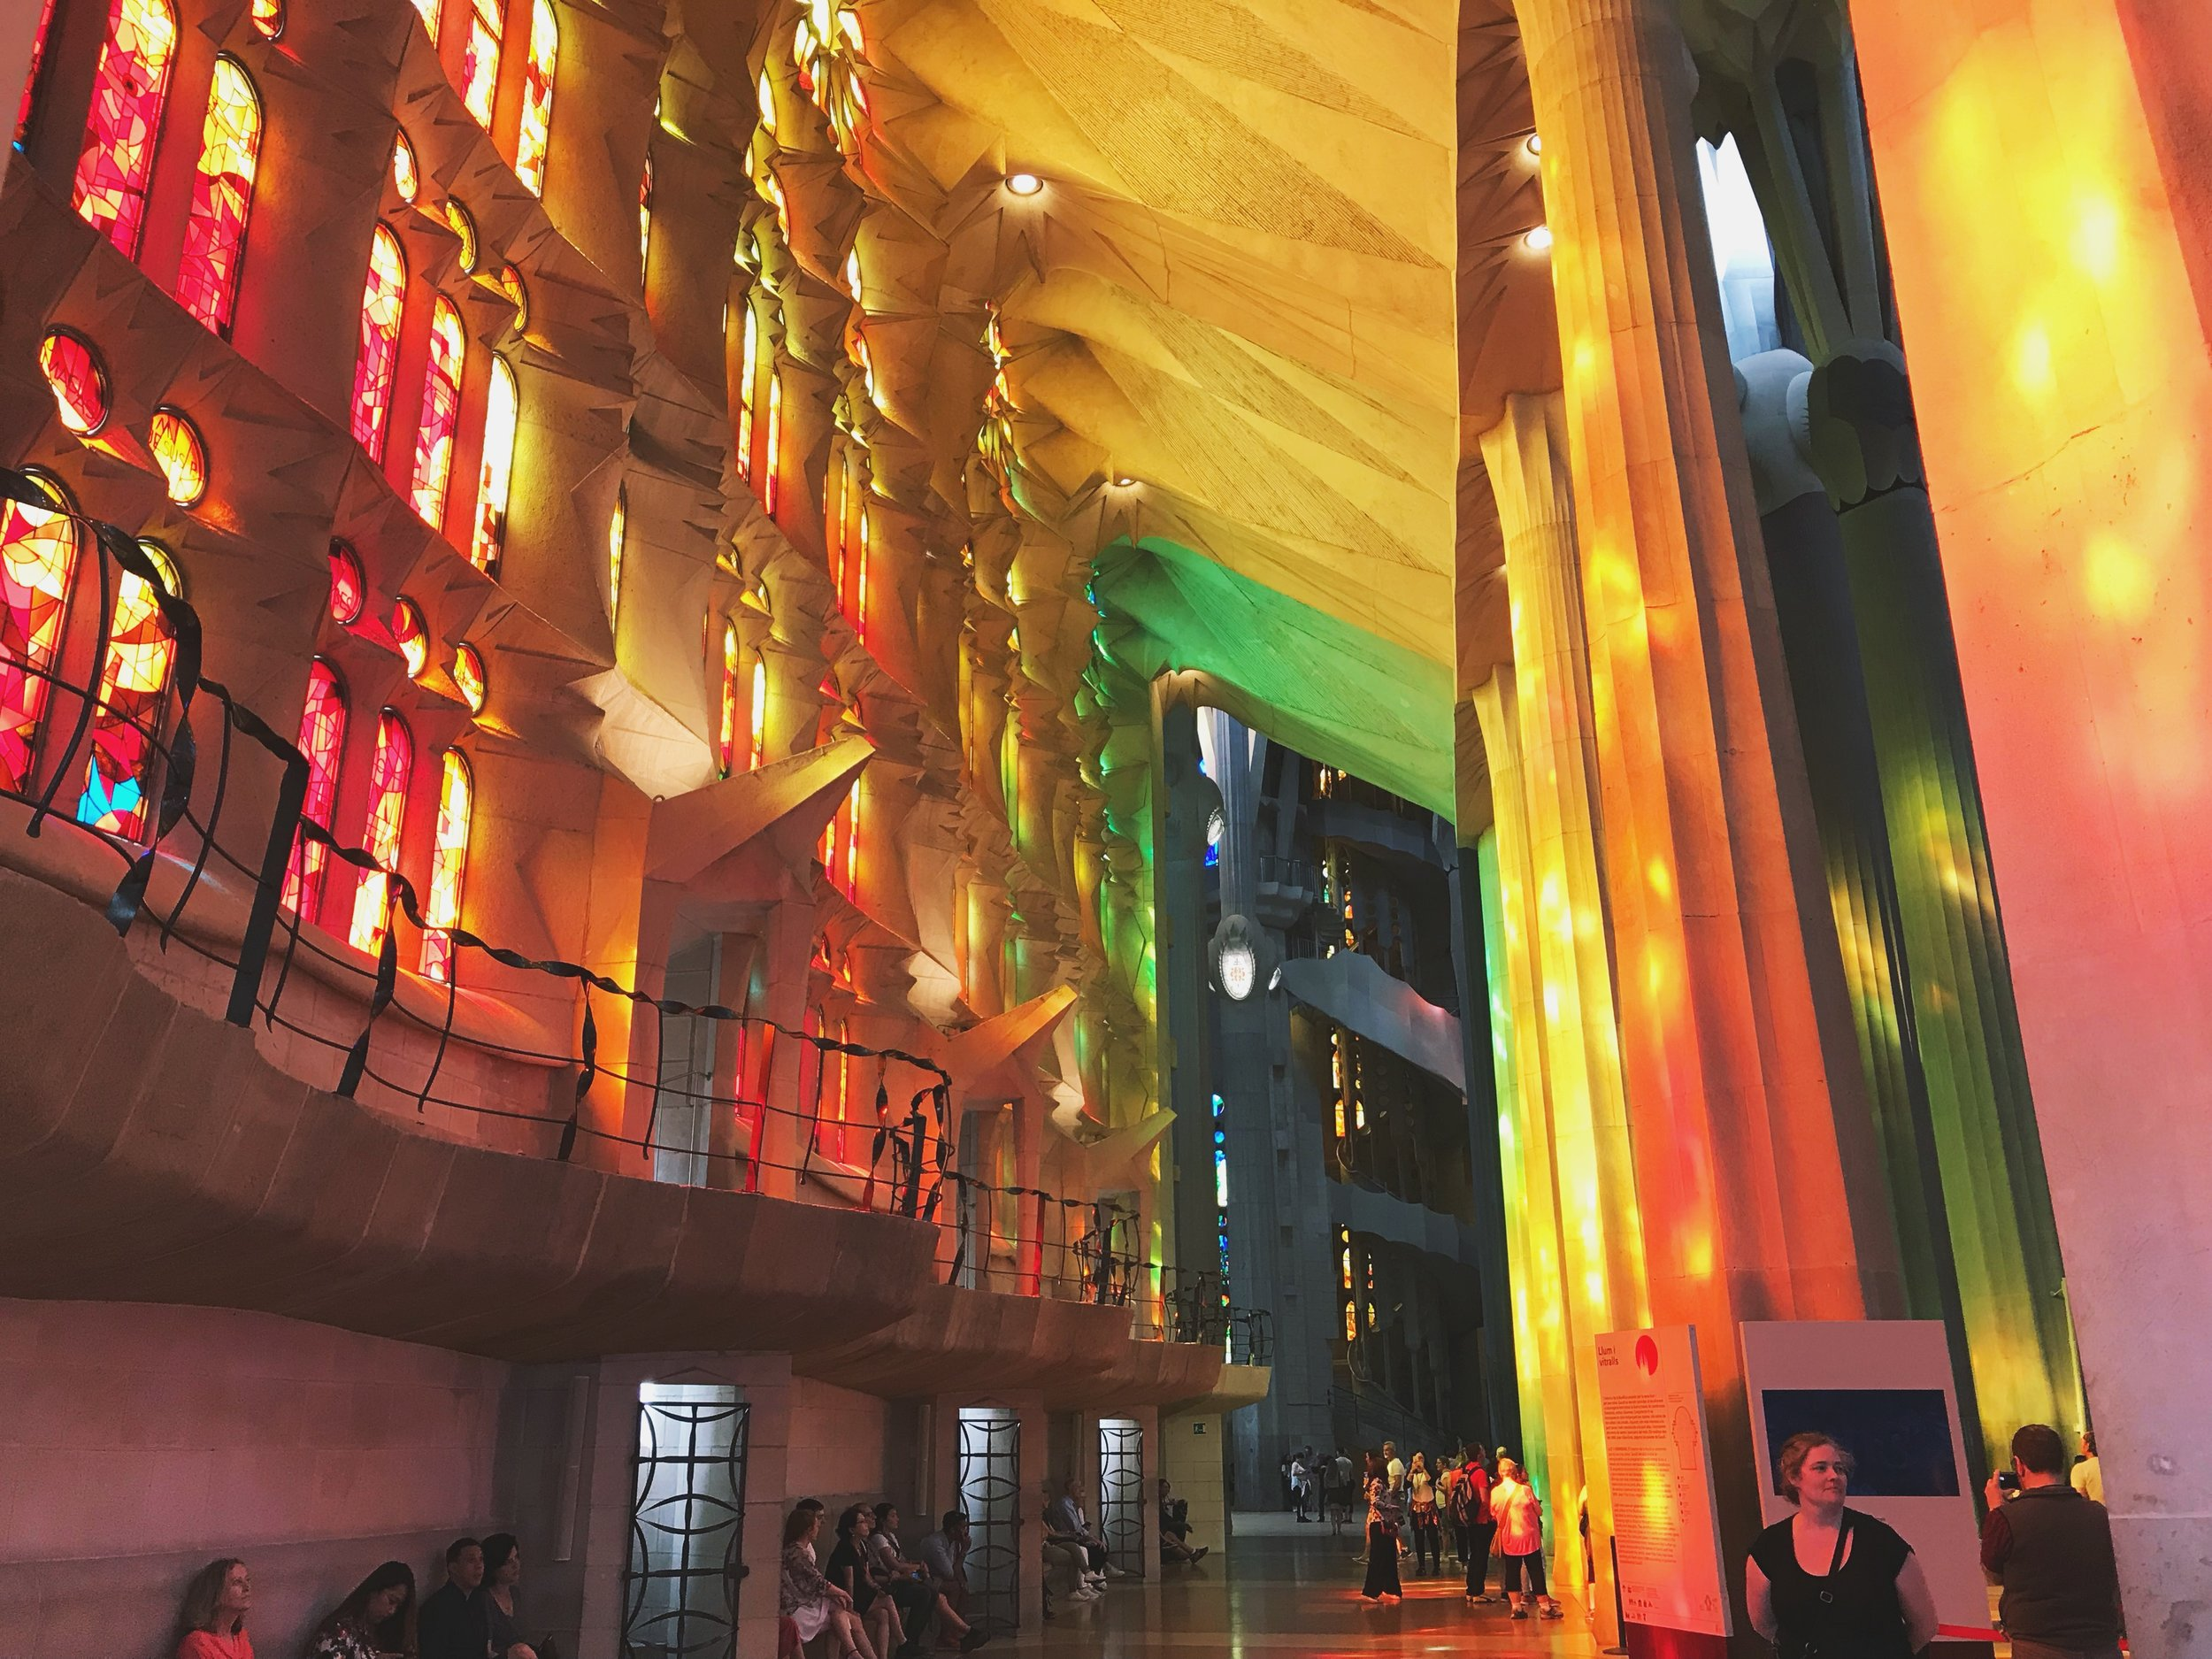 The rainbow cathedral (La Sagrada Familia in Barcelona) on my last day in Spain